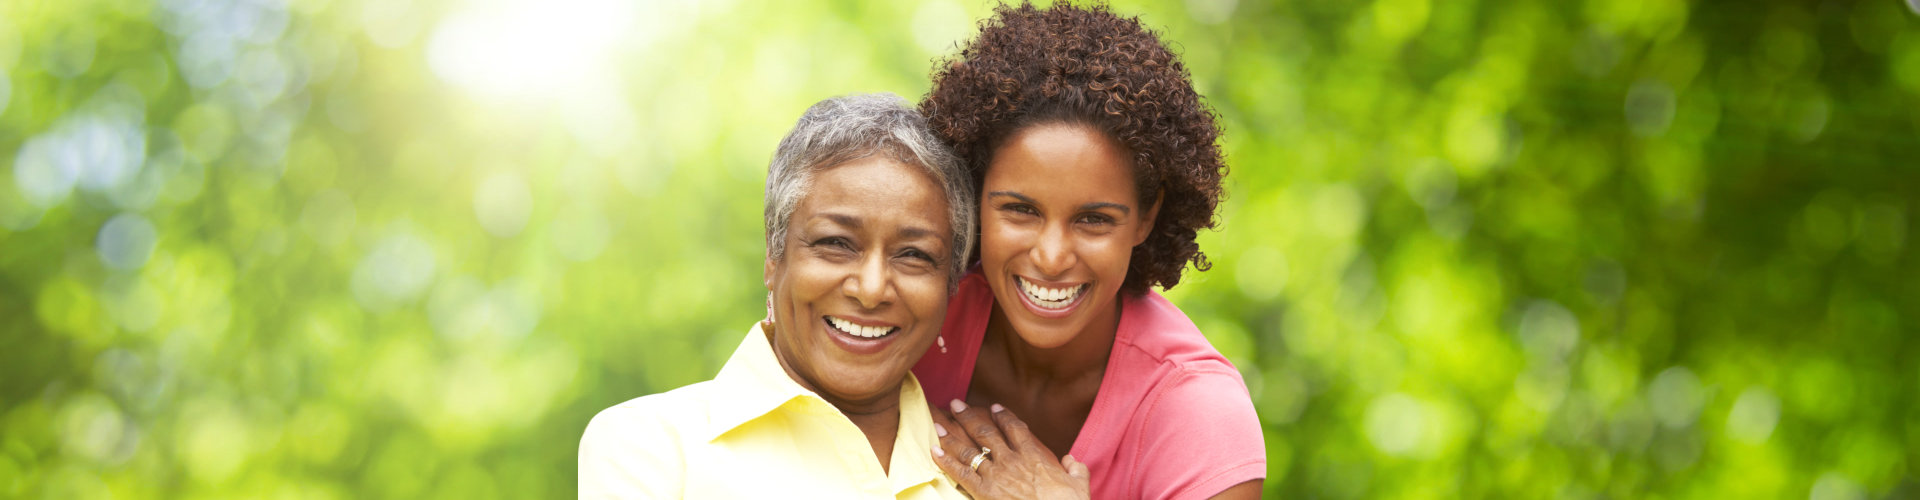 female caregiver with her client smiling